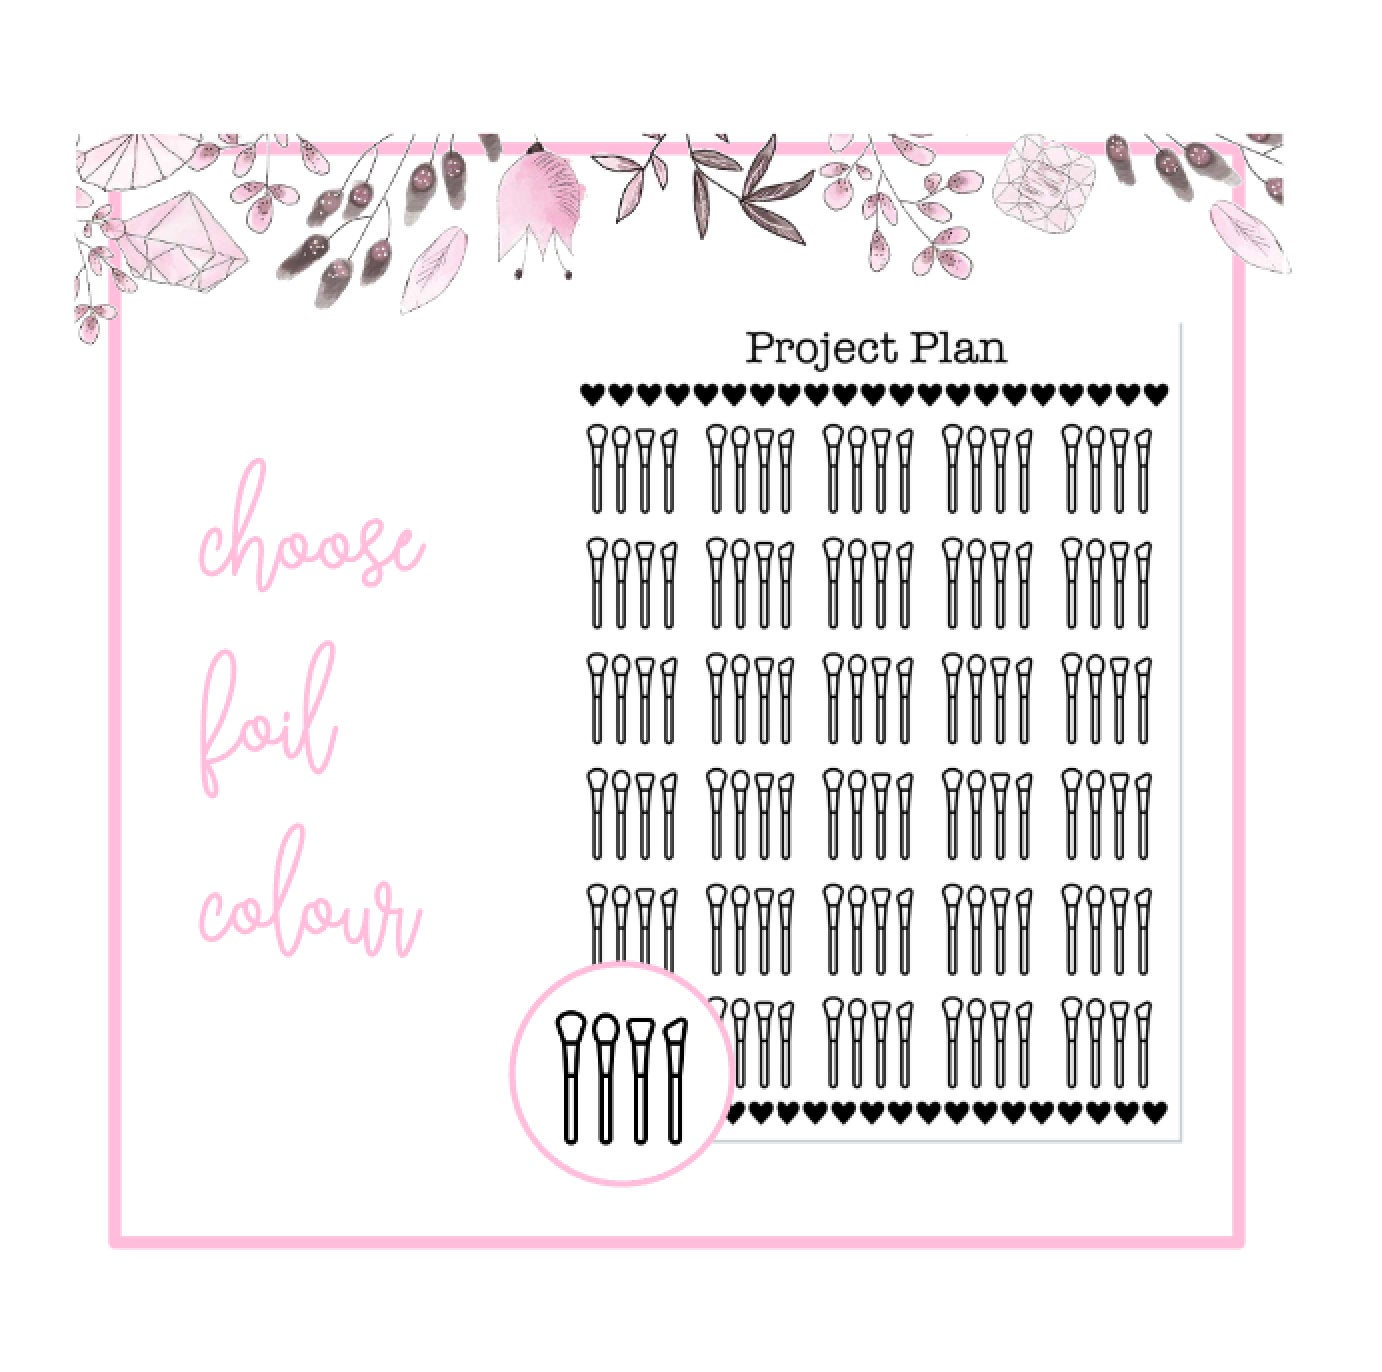 Foil Makeup Brushes Icon Planner Stickers | Choose Gold, Rose Gold, or Silver Foil